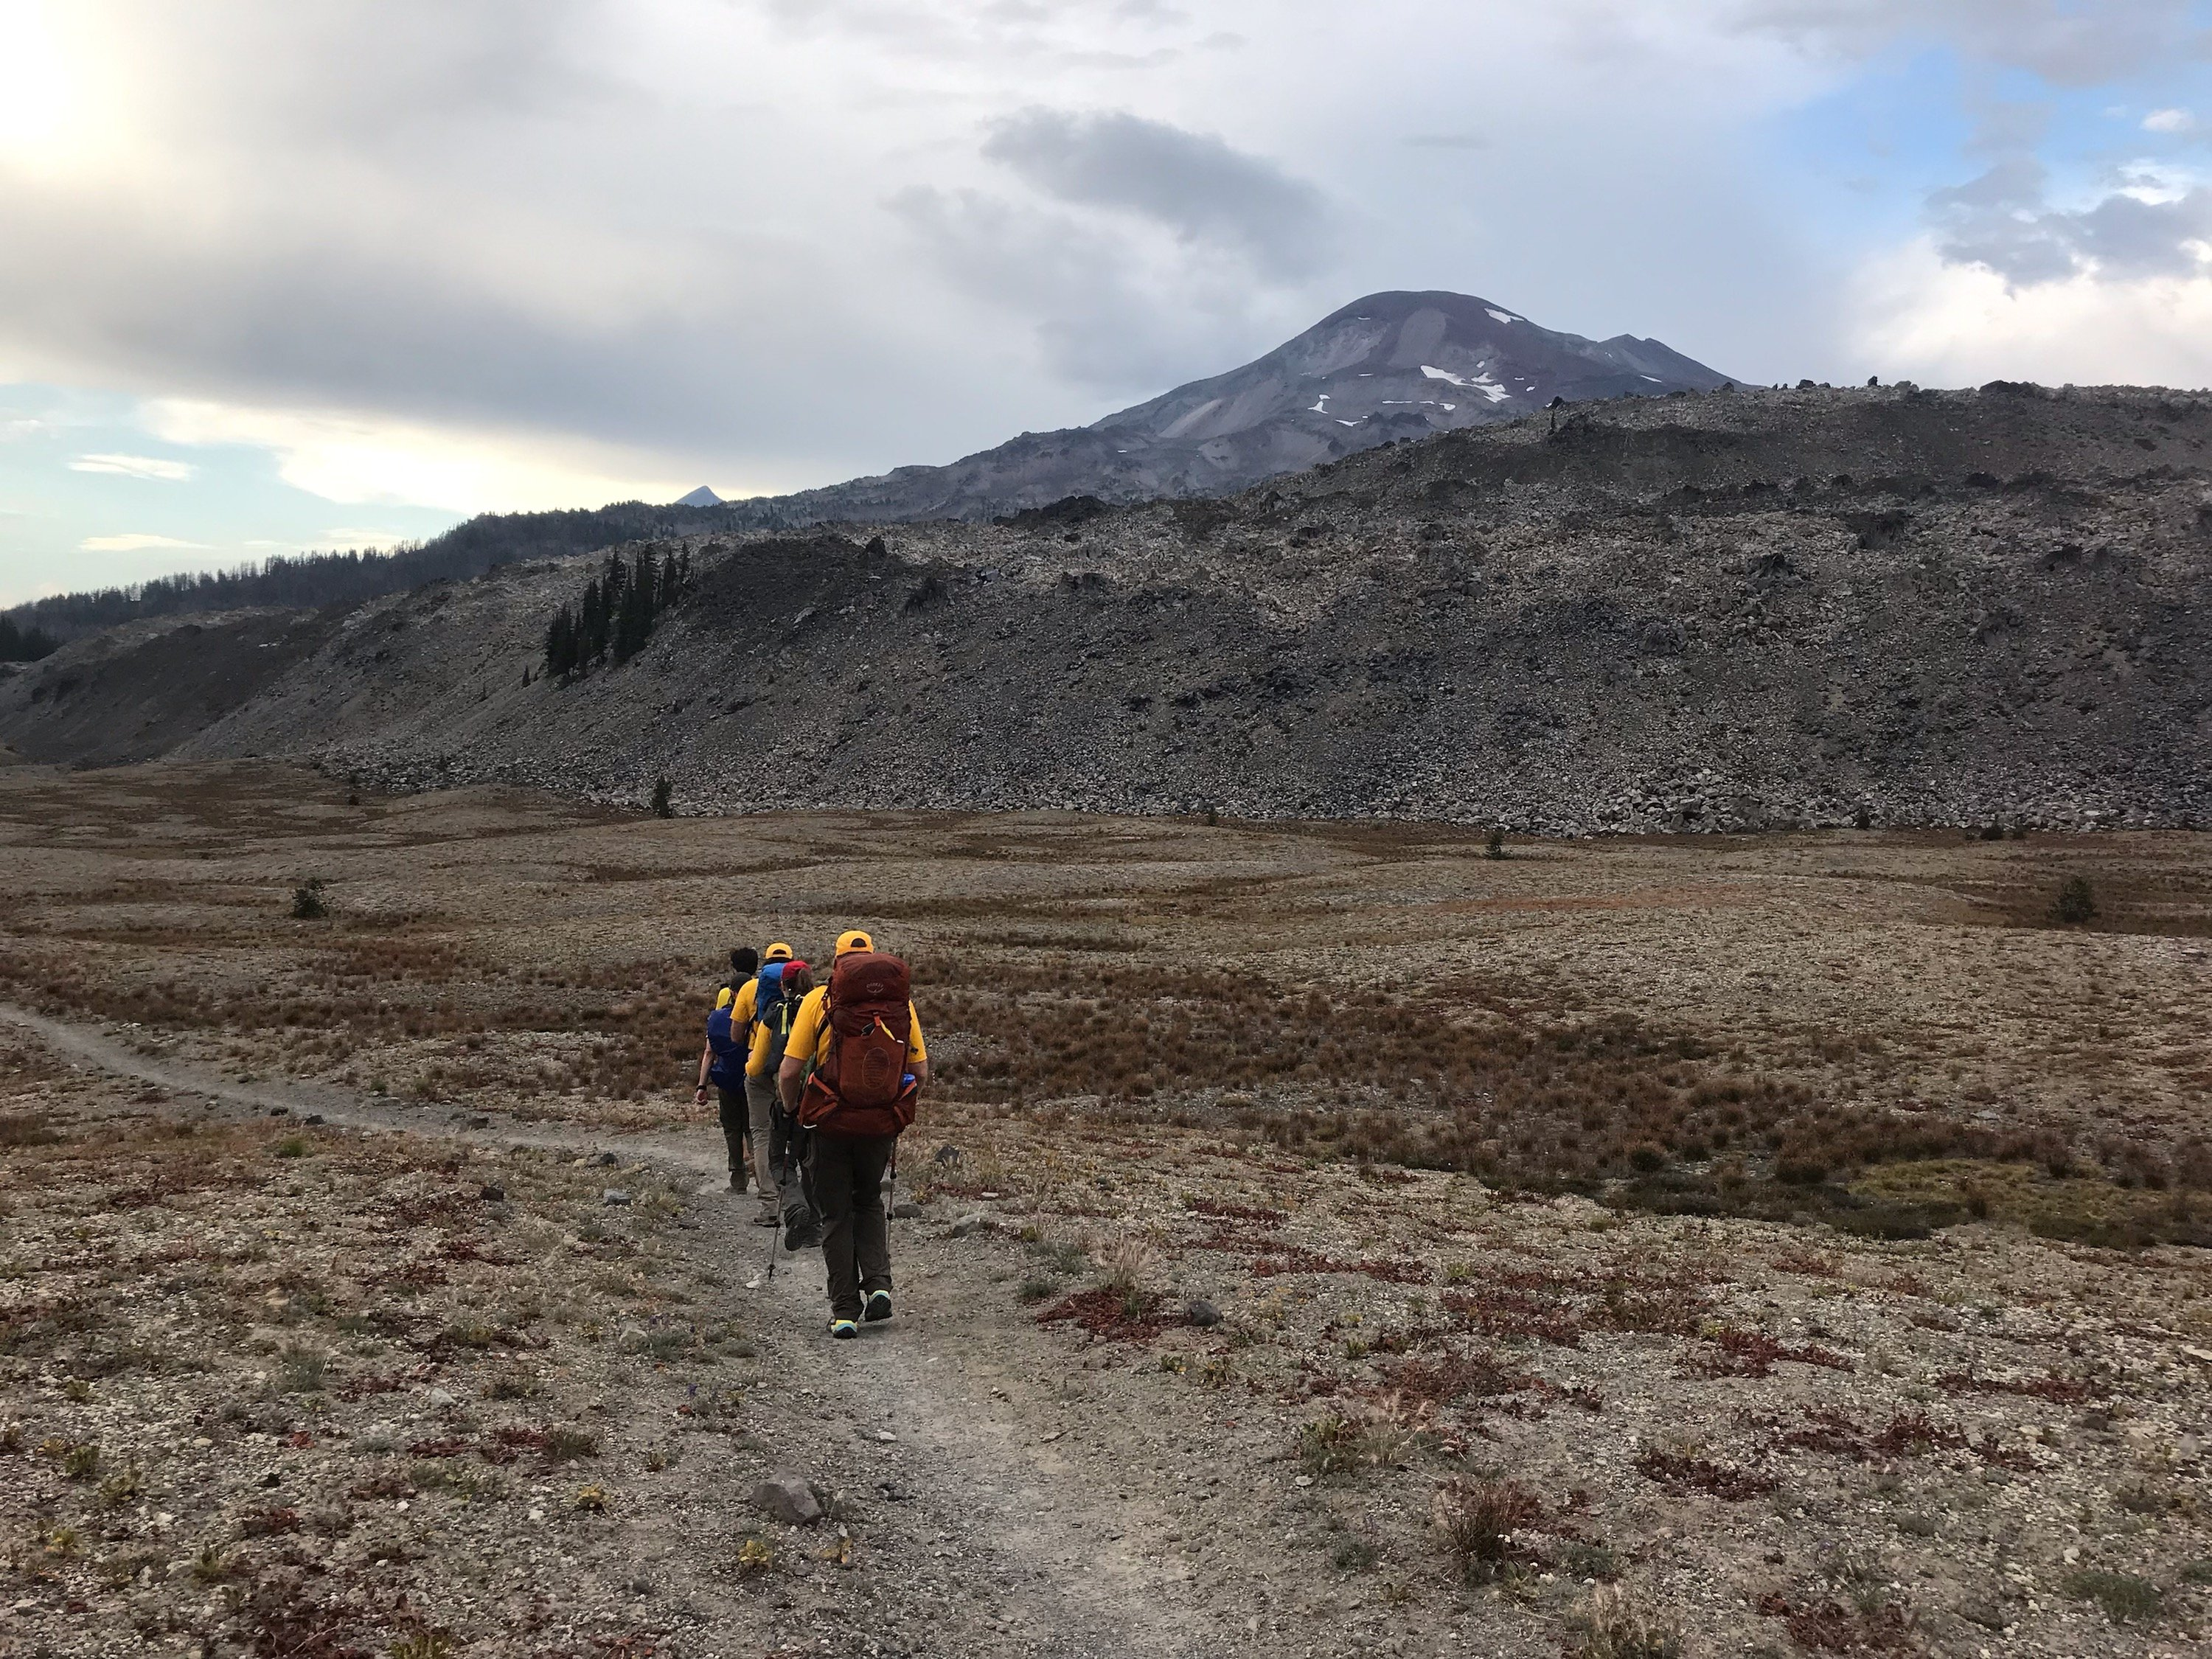 INJURED PACIFIC CREST TRAIL HIKER RESCUED